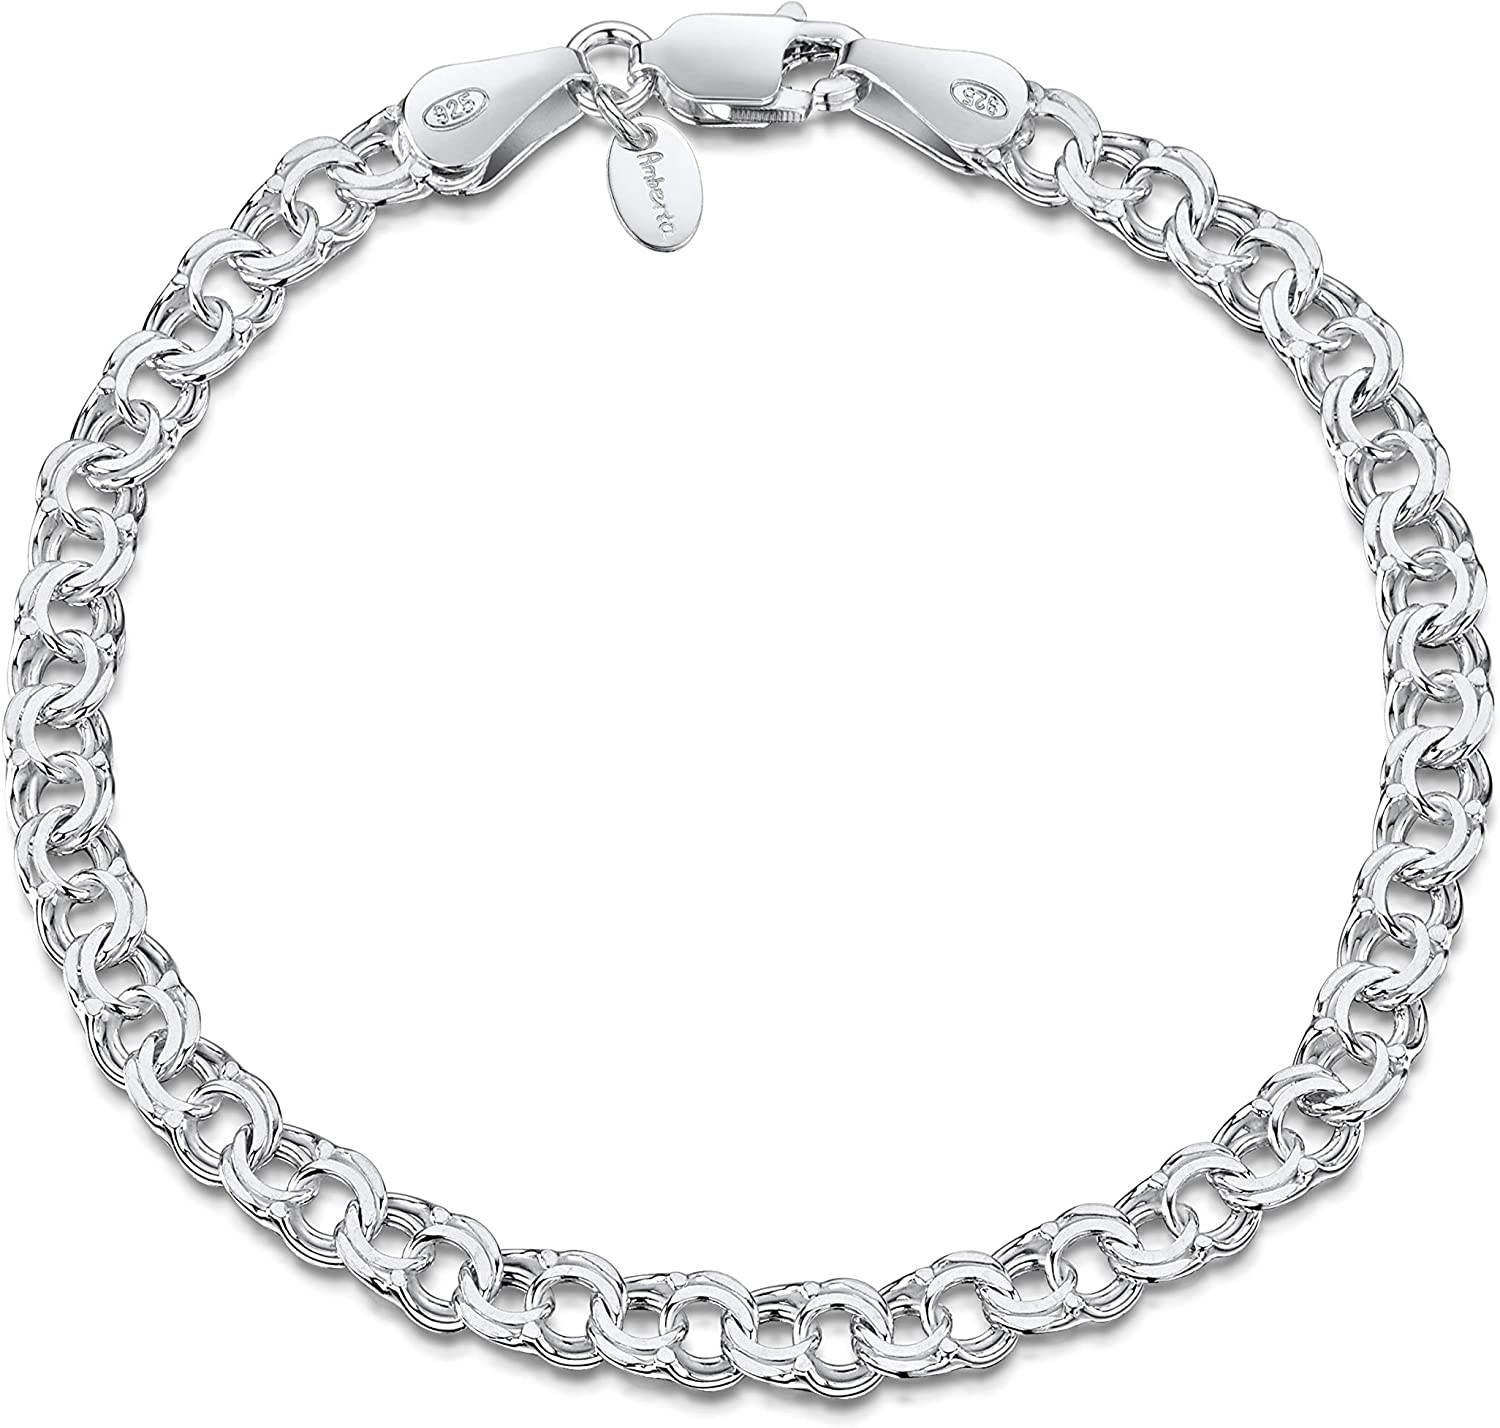 """Amberta 925 Sterling Silver 4.5 mm Chunky Double Curb Chain Bracelet Size 7"""" 7.5"""" 8"""" in"""